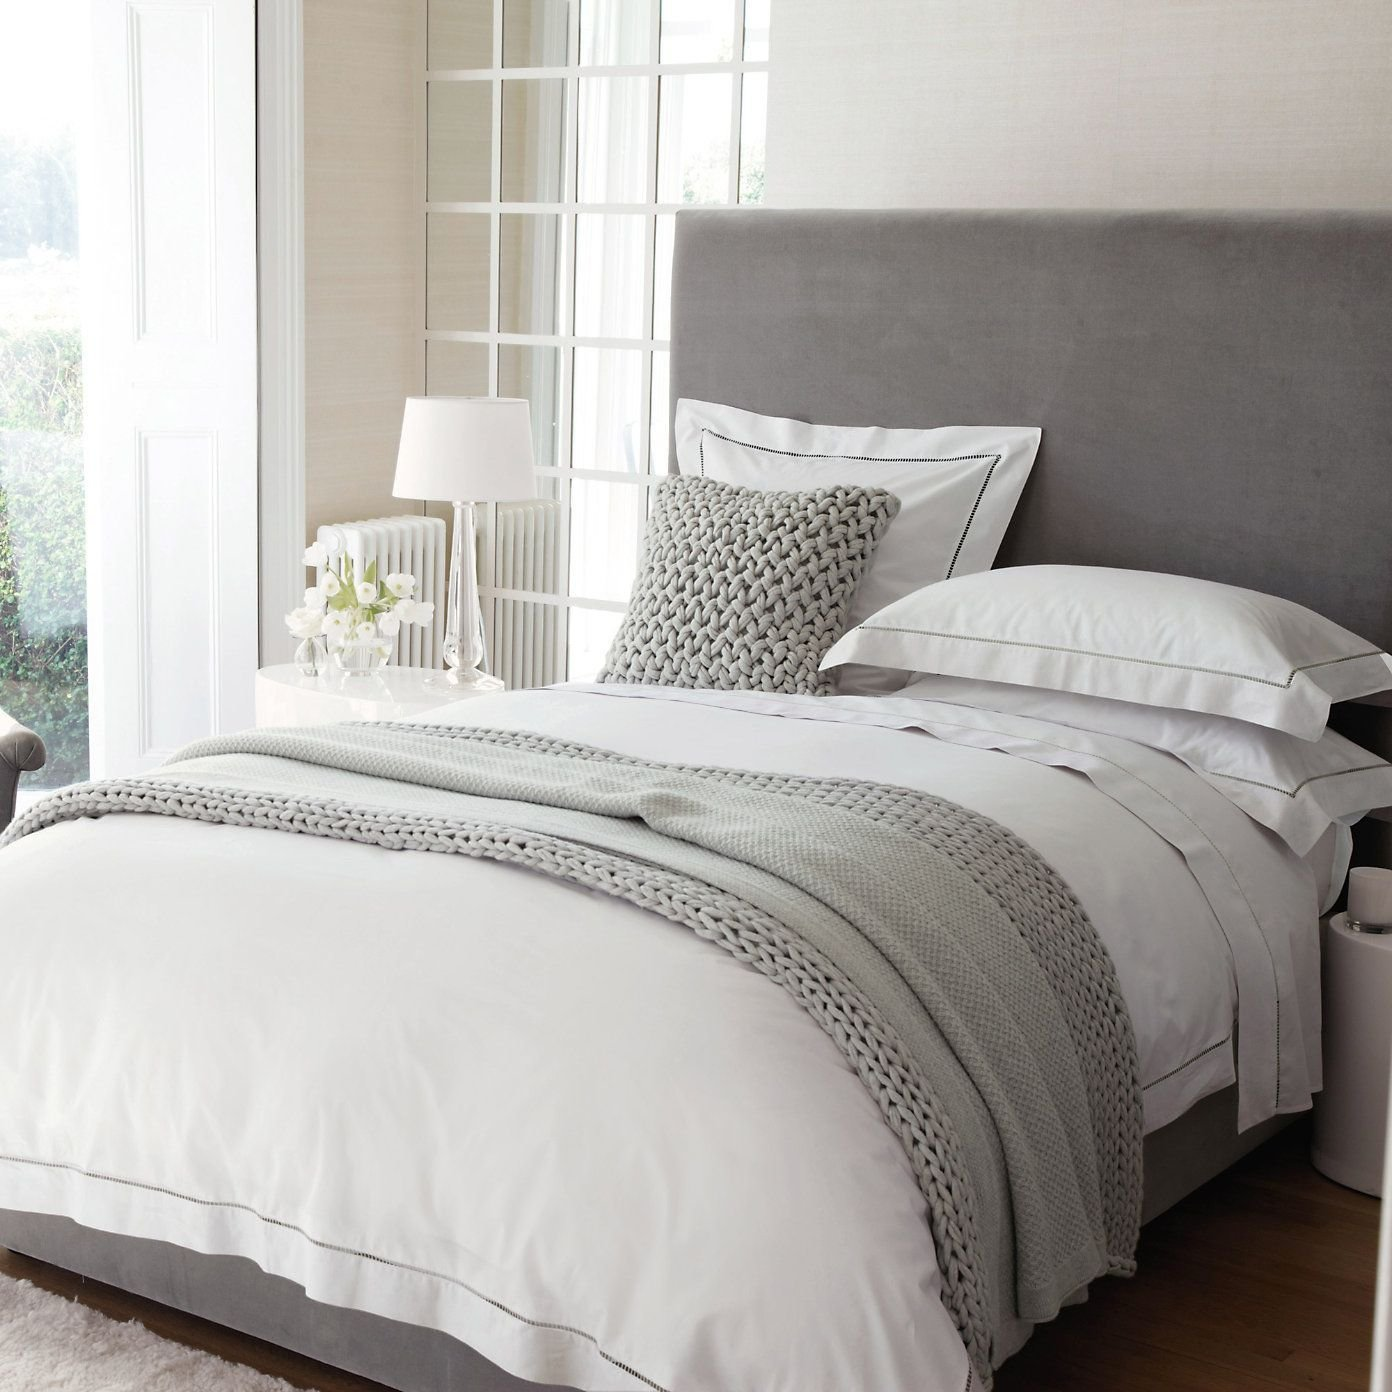 Best I Love These Pale Grey Neutrals For Bedrooms And Like The With Pictures